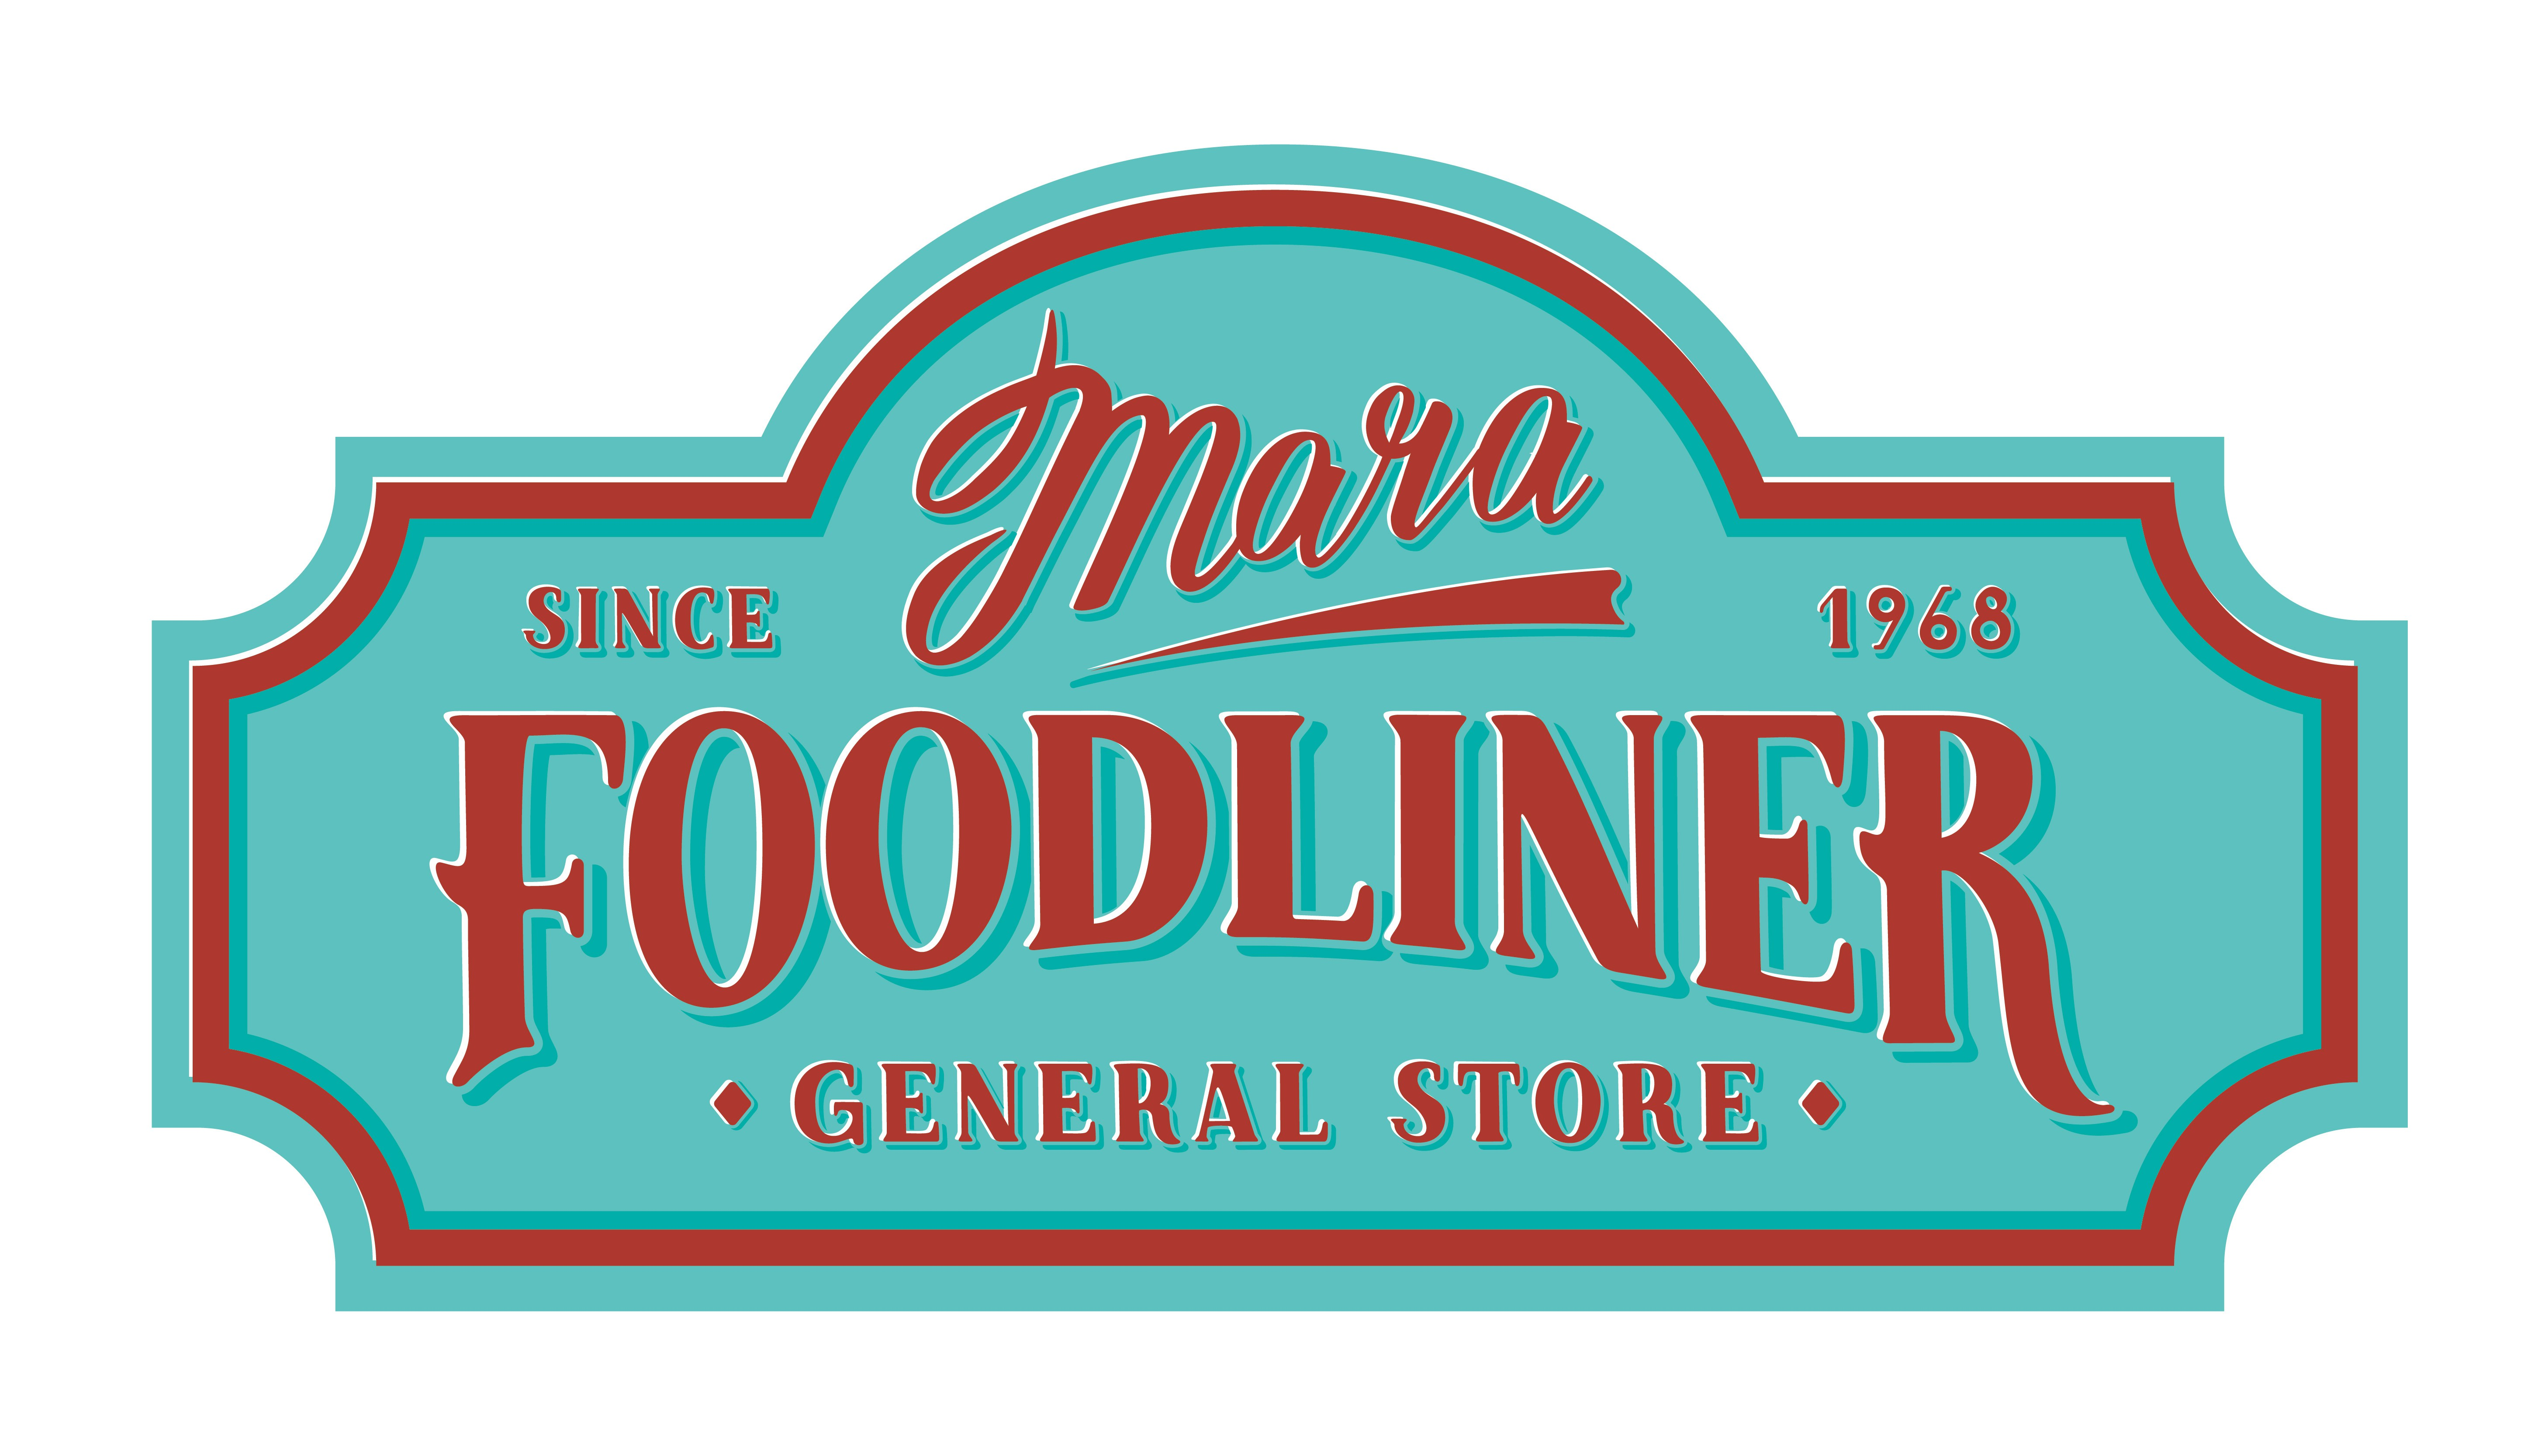 General store in need of an eye-catching logo with a vintage feel!